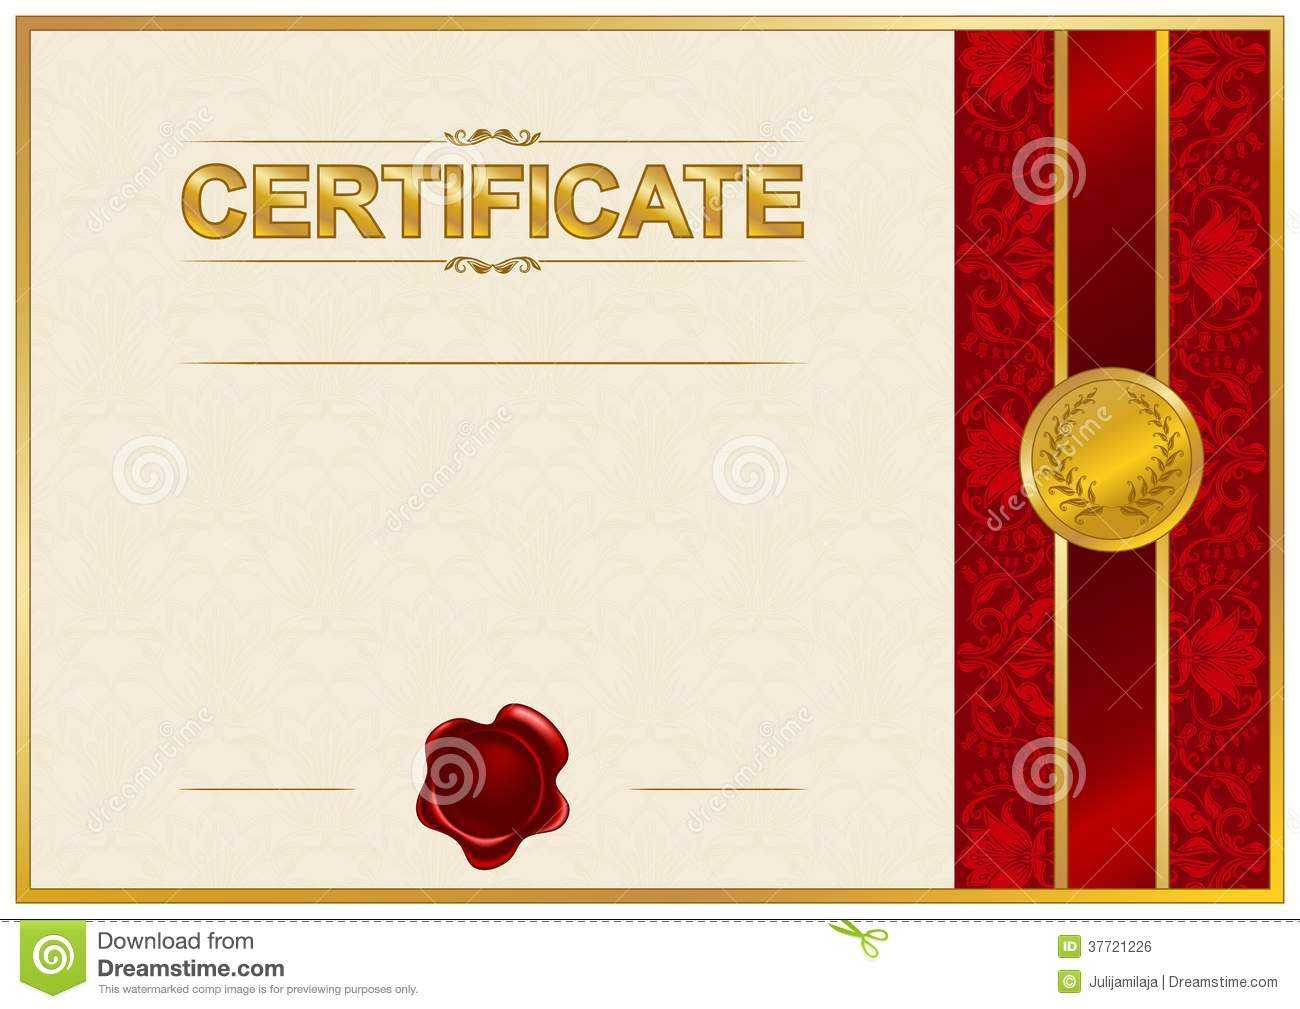 Elegant Template Of Certificate, Diploma Stock Illustration intended for Elegant Certificate Templates Free